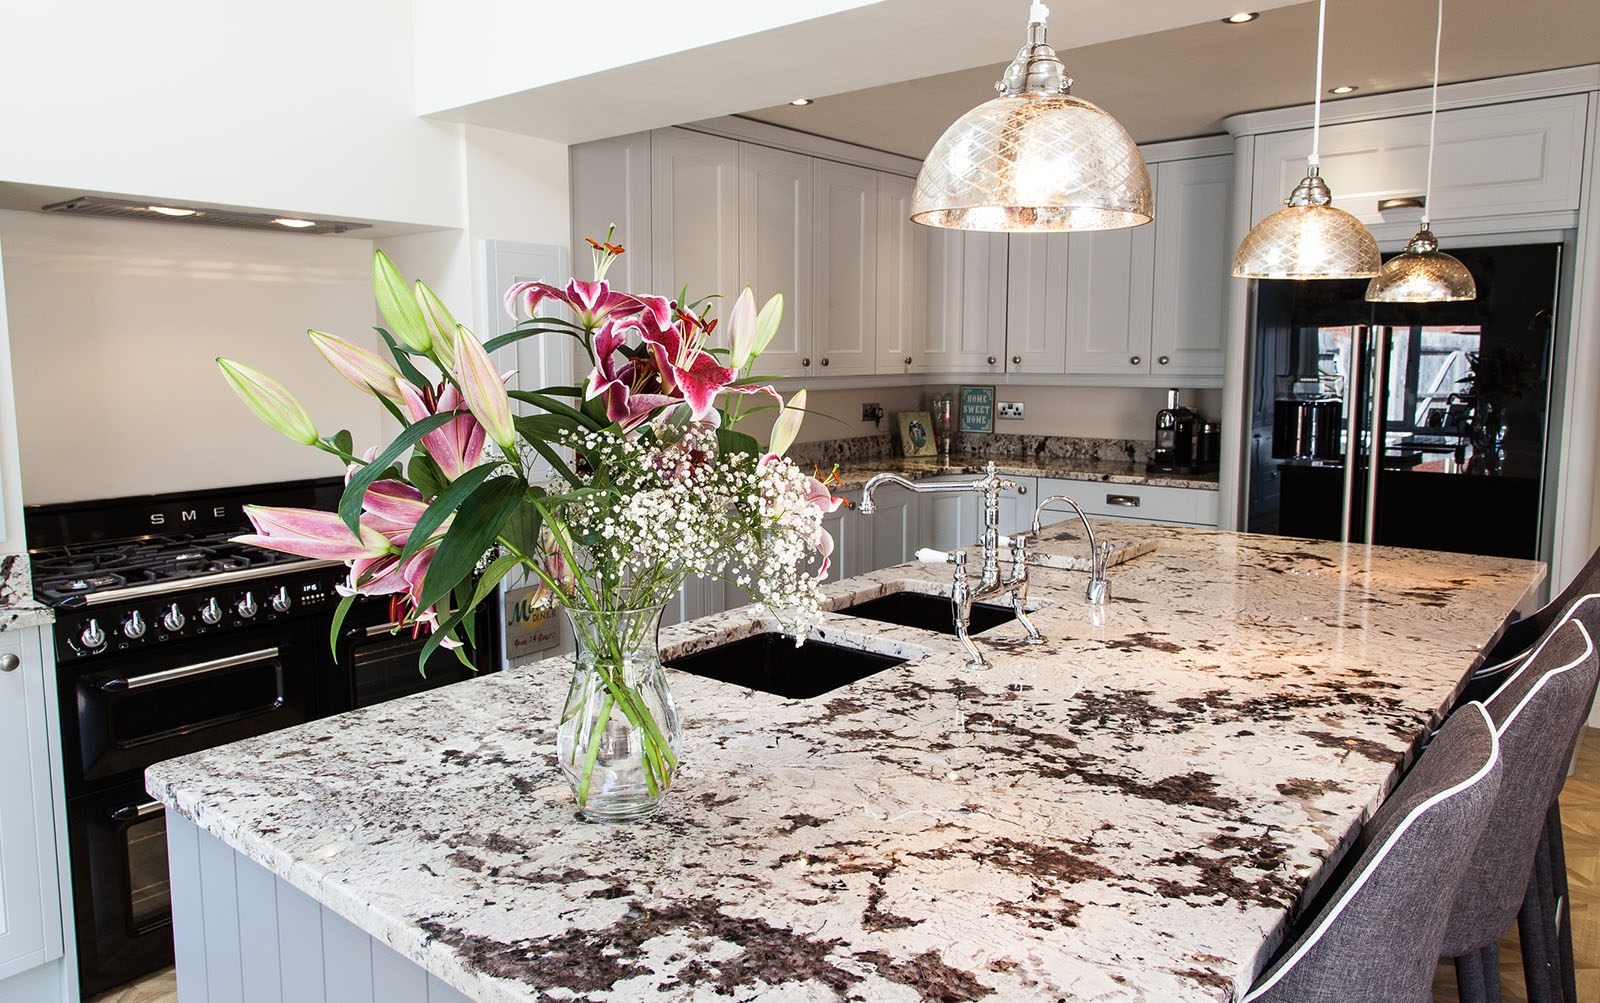 Kitchen with Flowers